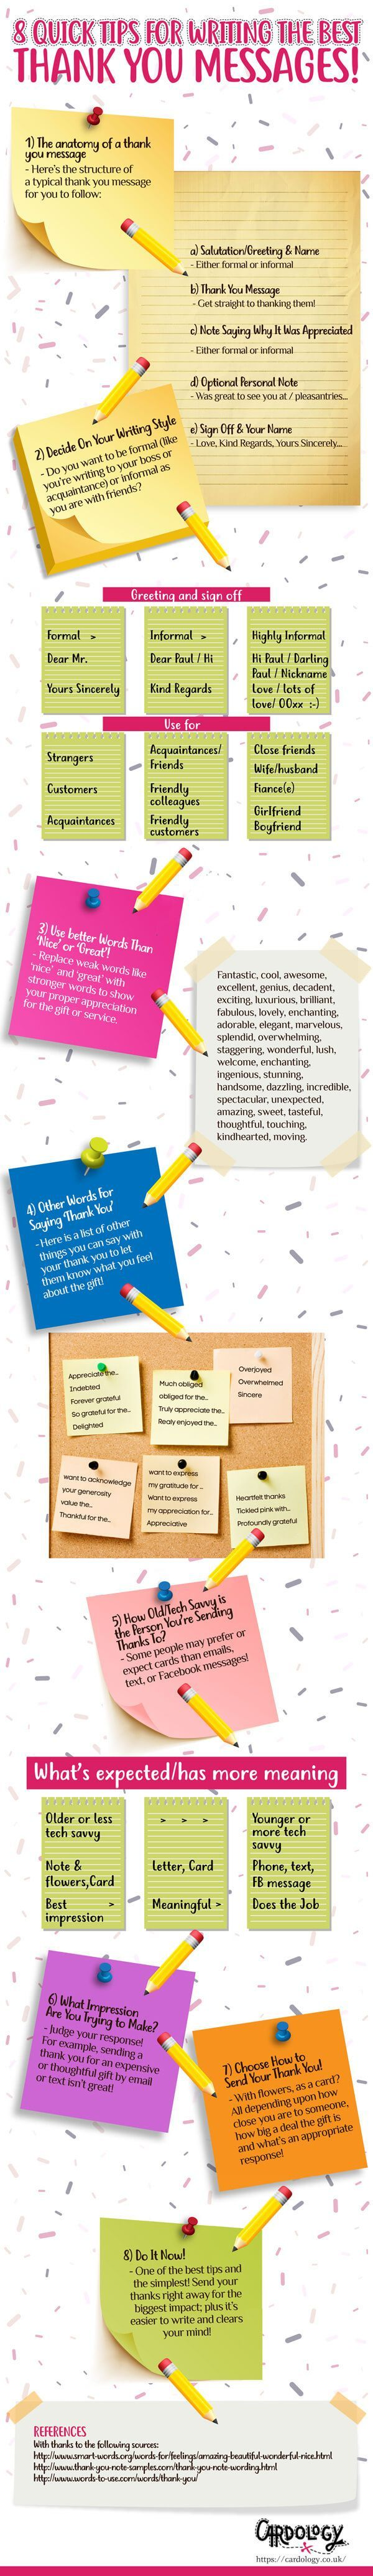 Infographic by Cardology with 8 thank-you note writing tips to help you structure your note and come up with the thank you message.